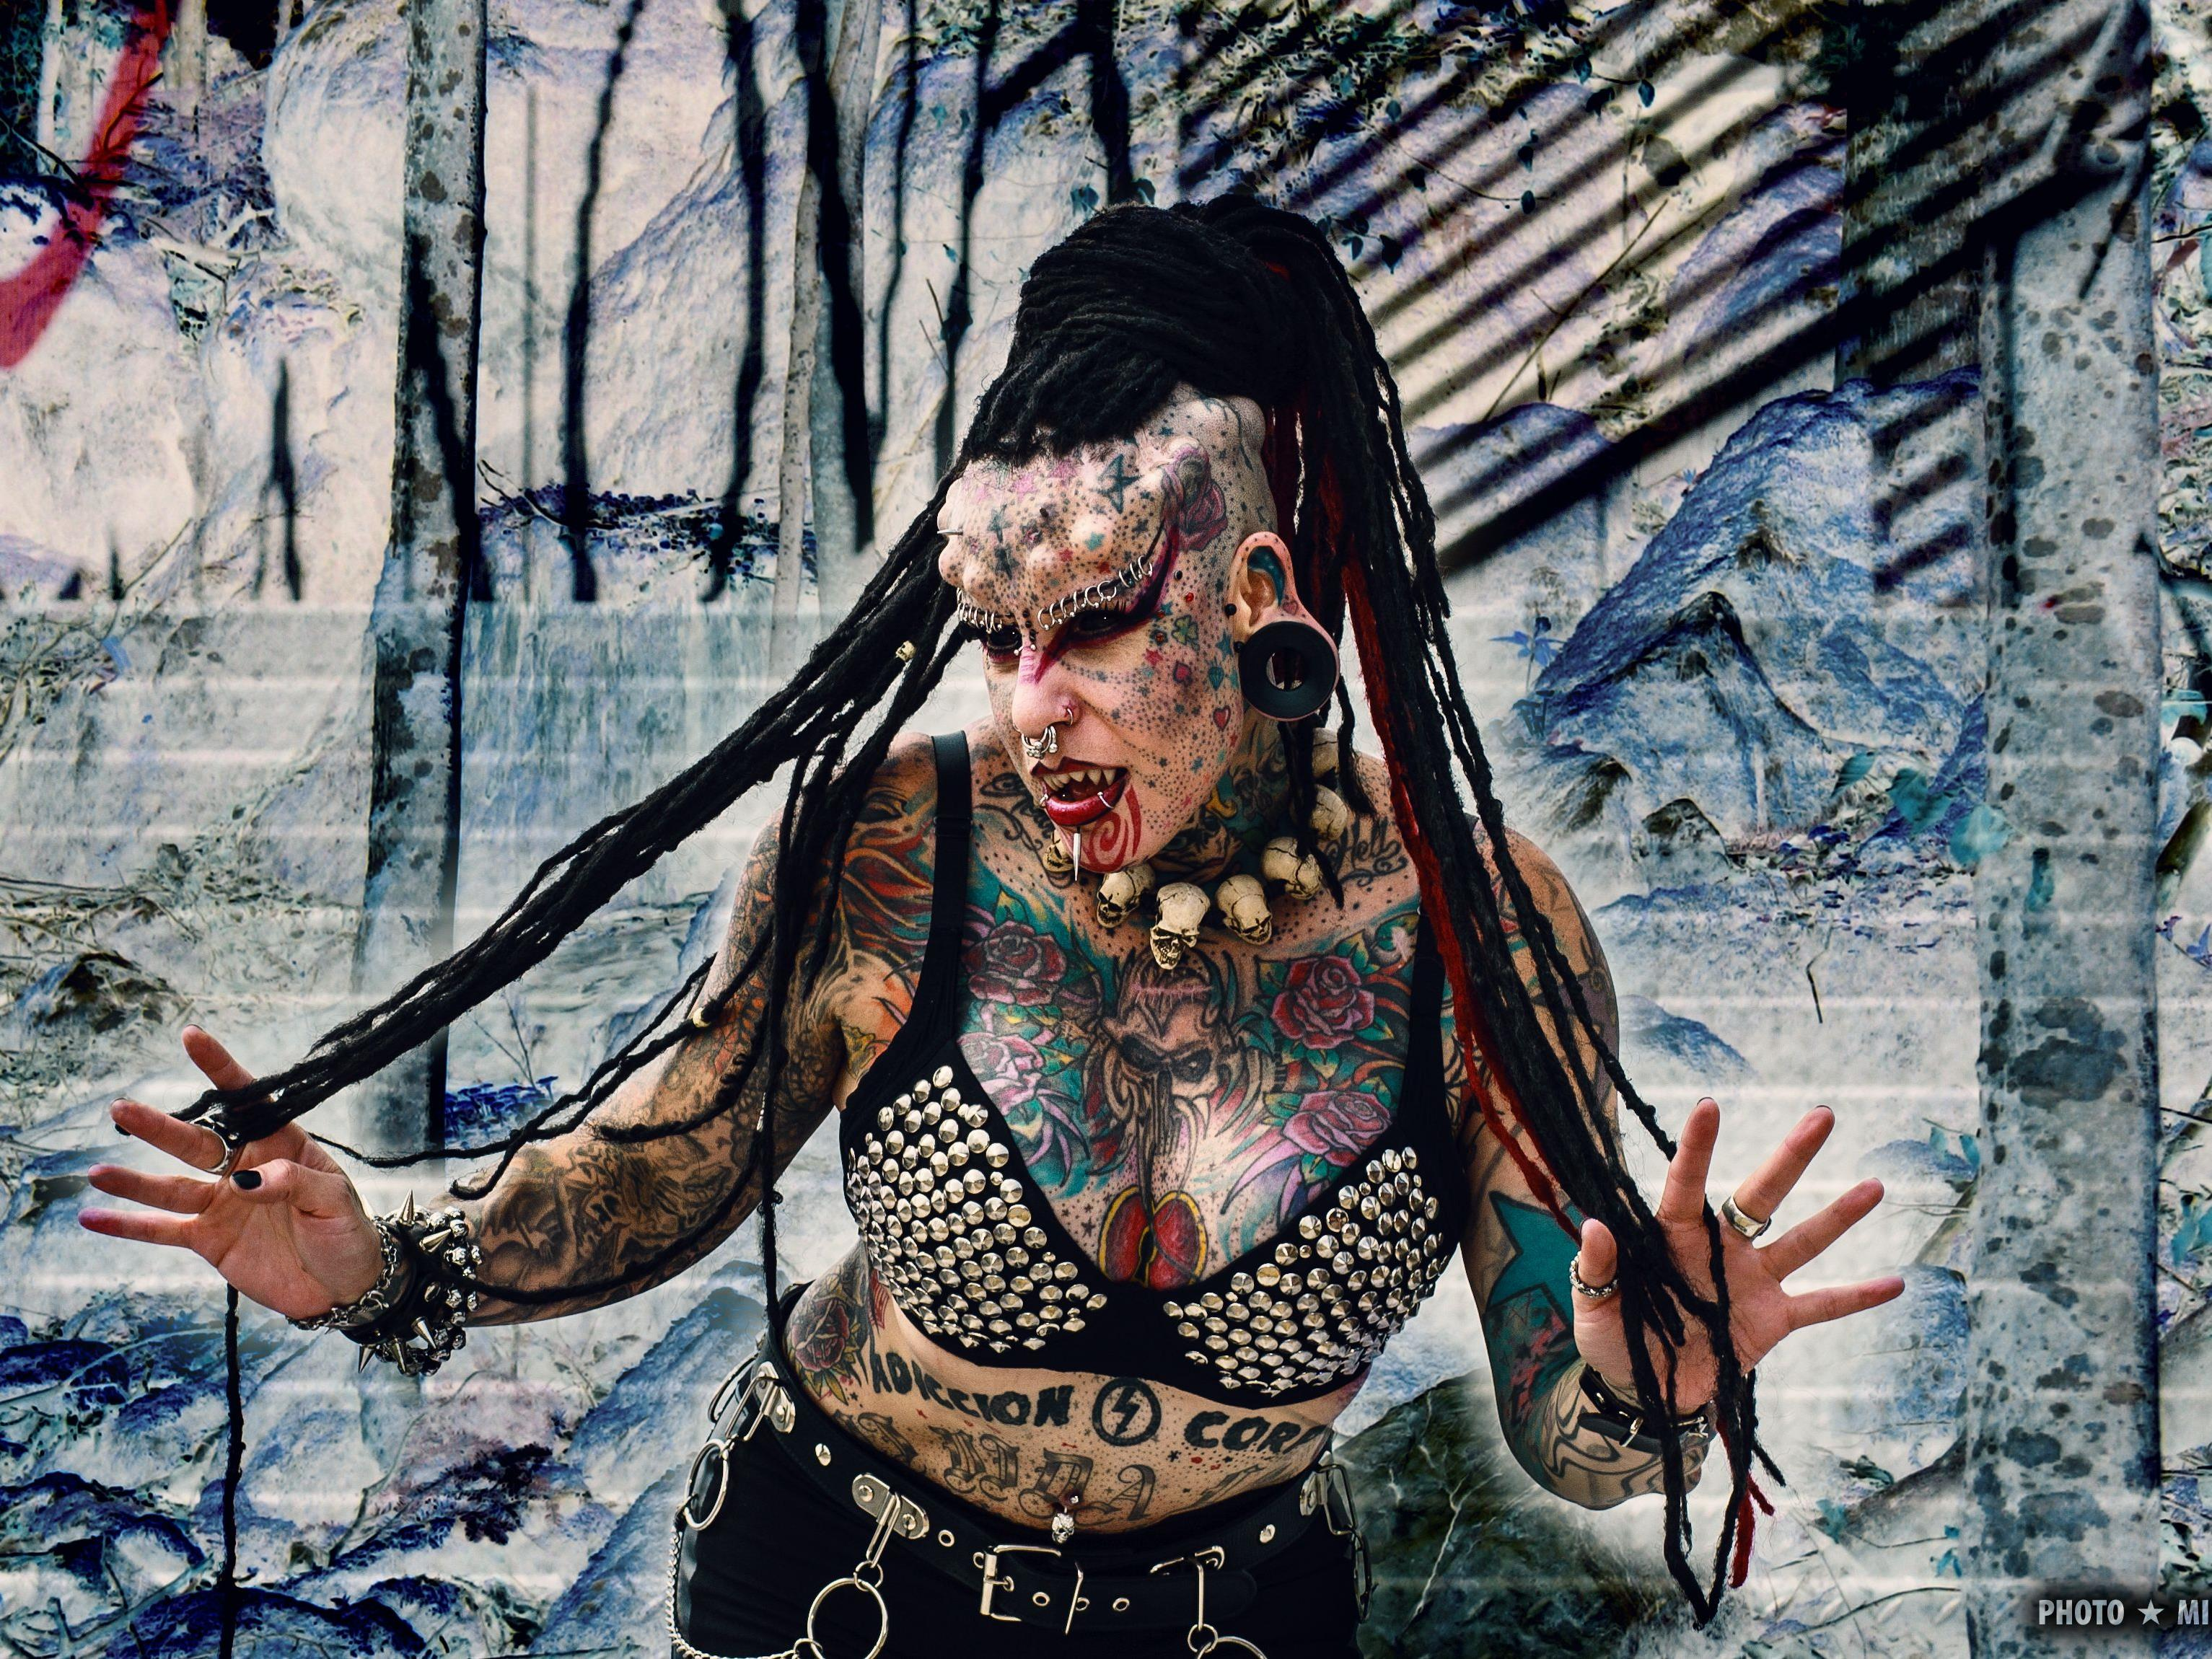 The Mexican Vampire Woman exklusiv auf der Wildystyle & Tattoo Messe.